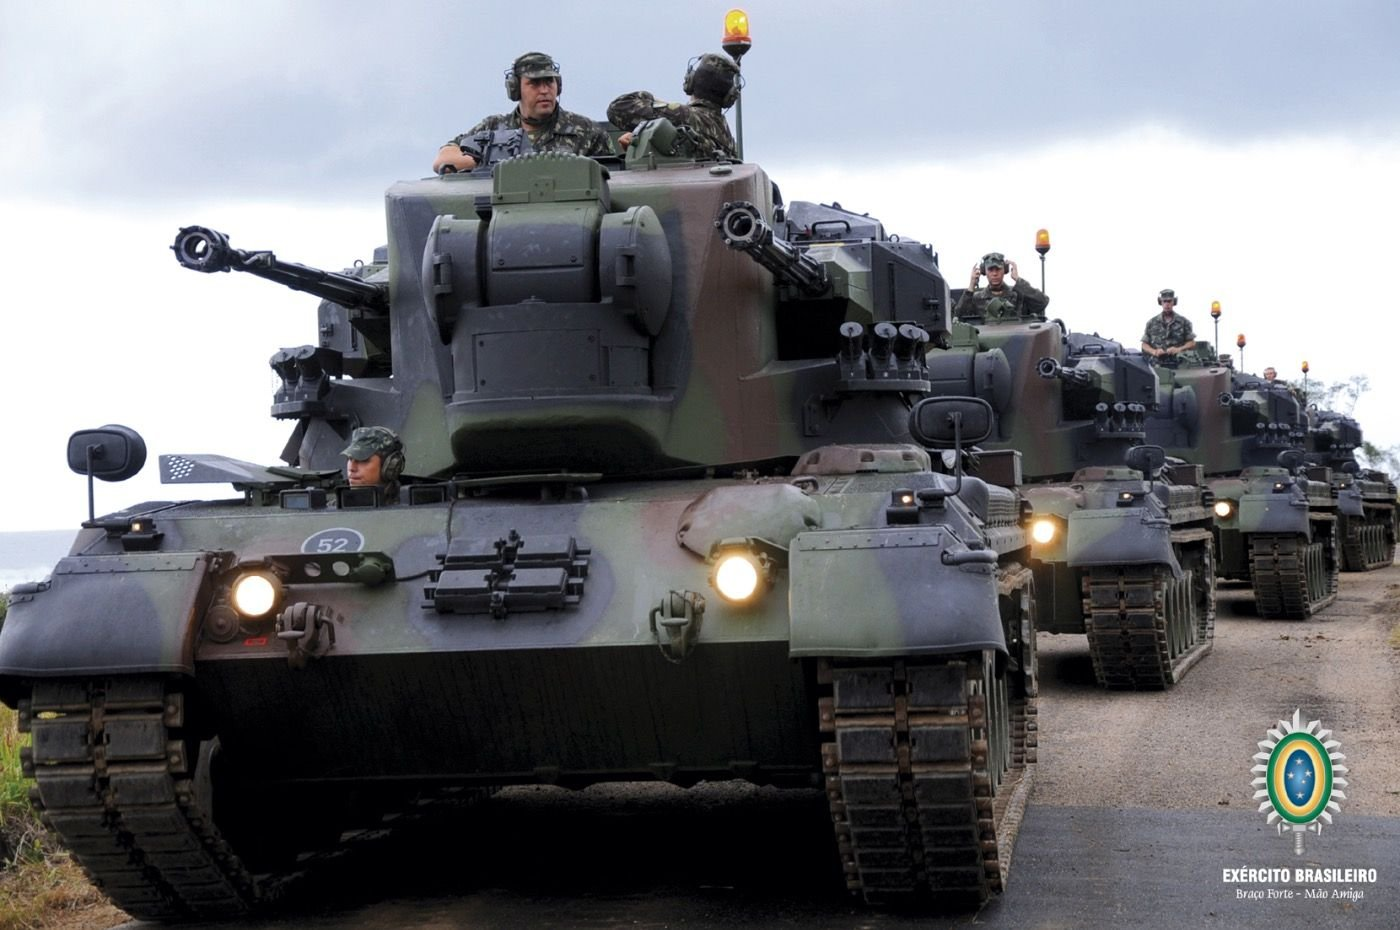 U.S. Army Transfers 50 Armored Combat Vehicles to Brazilian Army